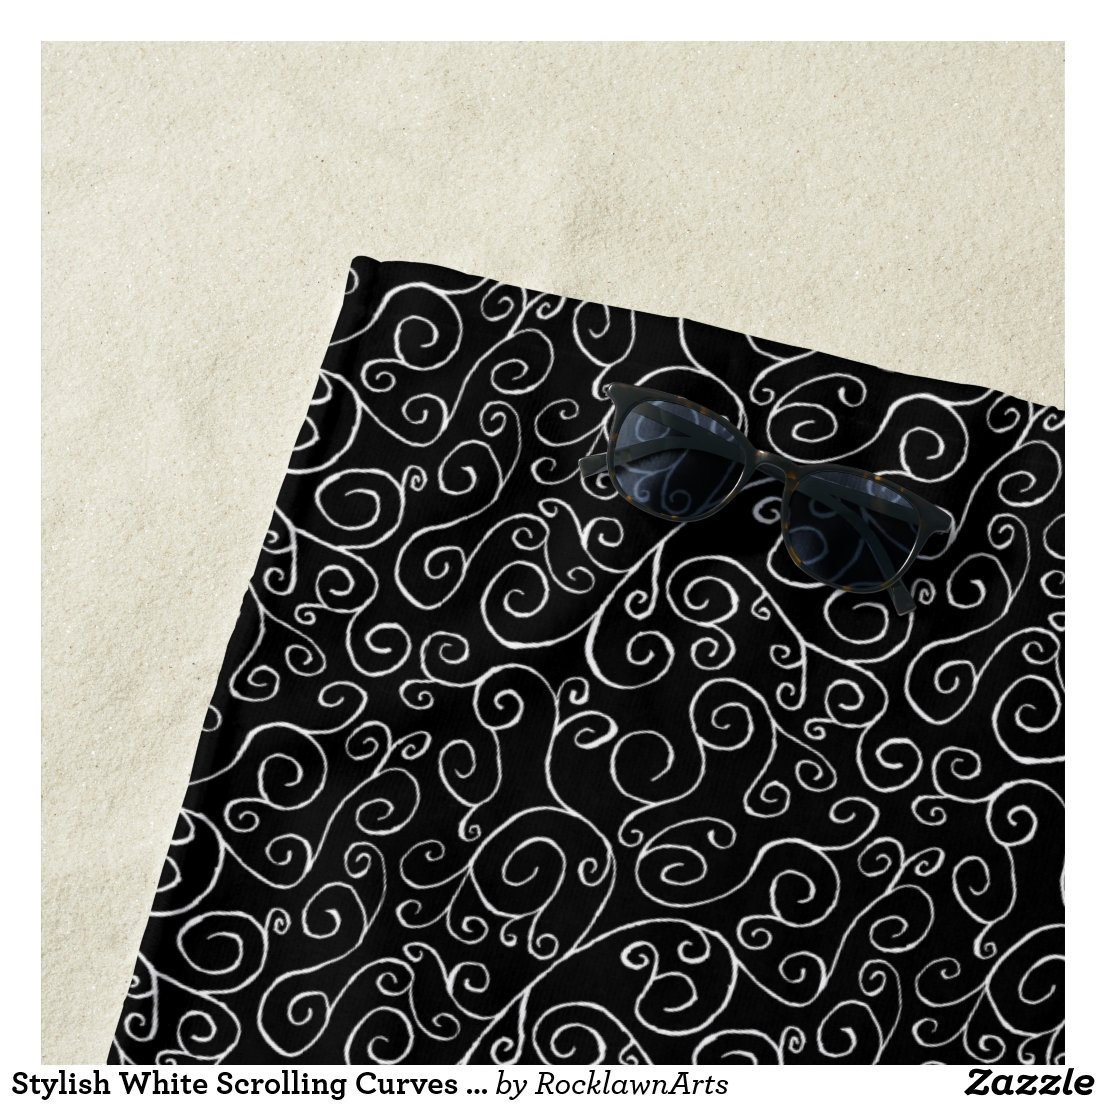 Stylish White Scrolling Curves on Black Beach Towel